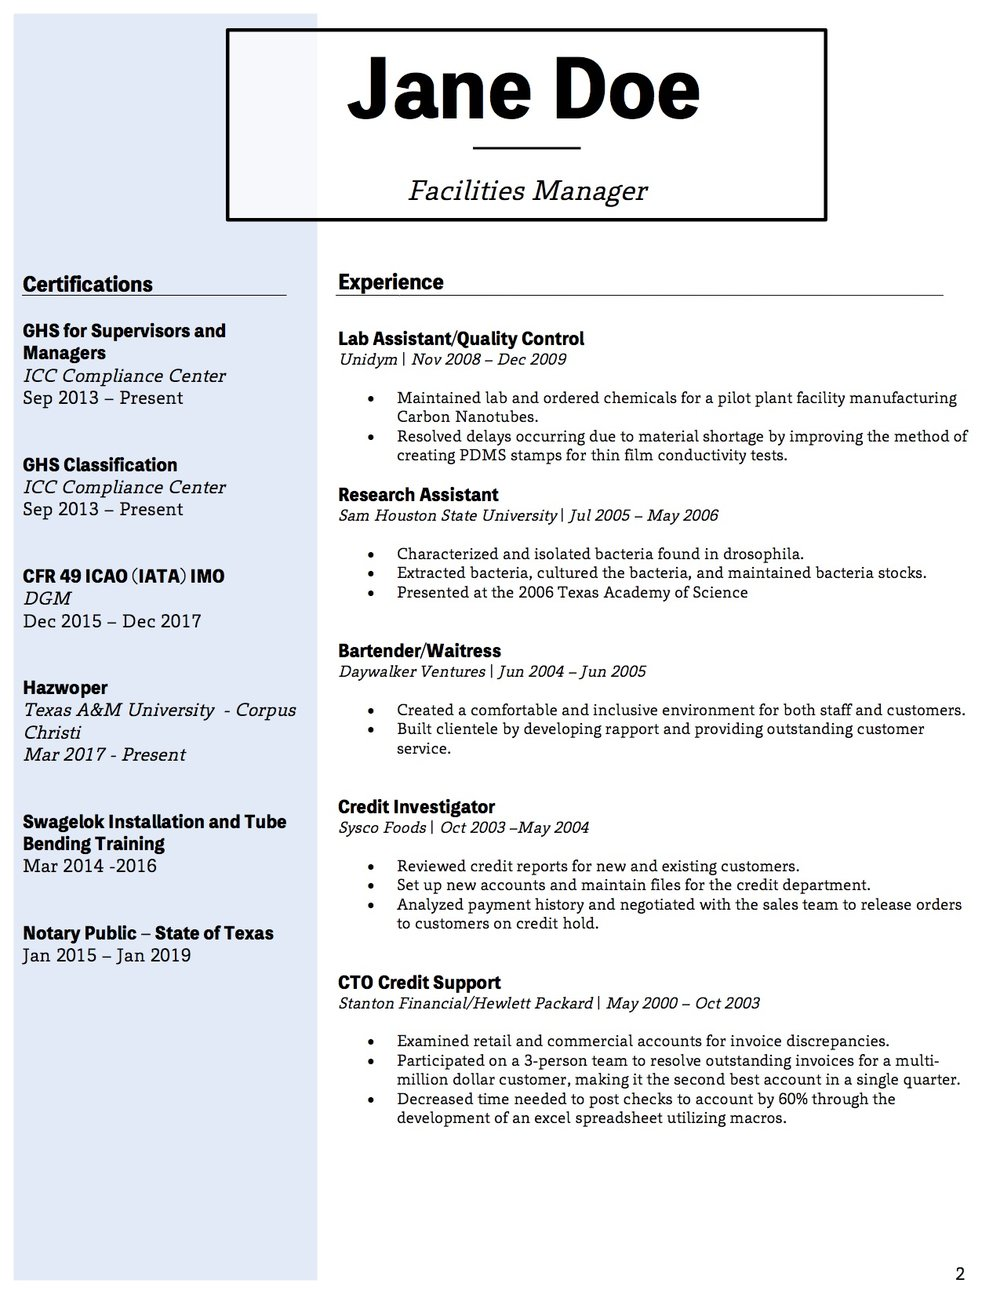 Client Resume #6 pg 2. Click to enlarge.